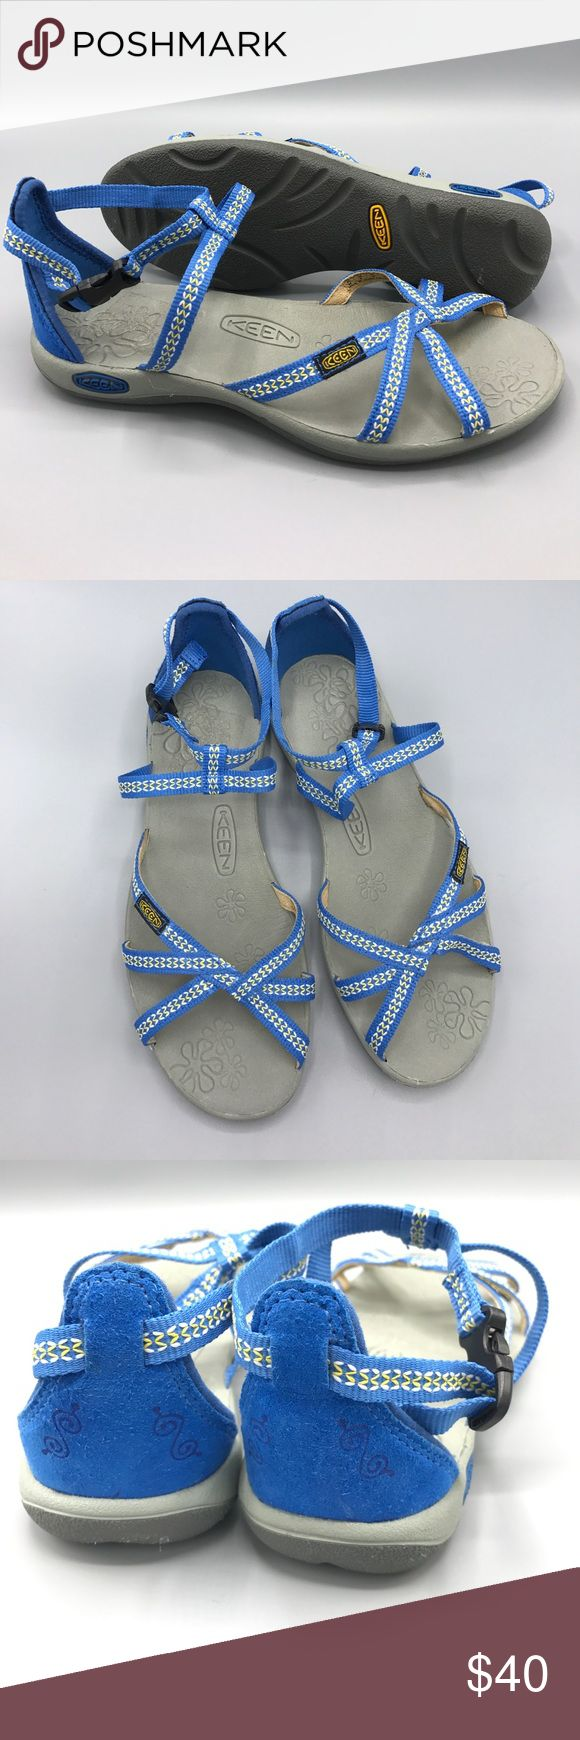 Keen La Paz adjustable strap sandal size US 6 blue Very gently Preowned!  Perfect for the beach or the boulevard, the La Paz Strap is a mixture of comfort and style.  ·  Washable polyester webbing upper is breathable and durable in water.  ·  Metatomical EVA molded footbed for all day comfort.  ·  Compression molded EVA midsole gives you added cushioning and comfort.  ·  Multi-point adjustable strap system gives you adjustability and versatility. Keen Shoes Sandals